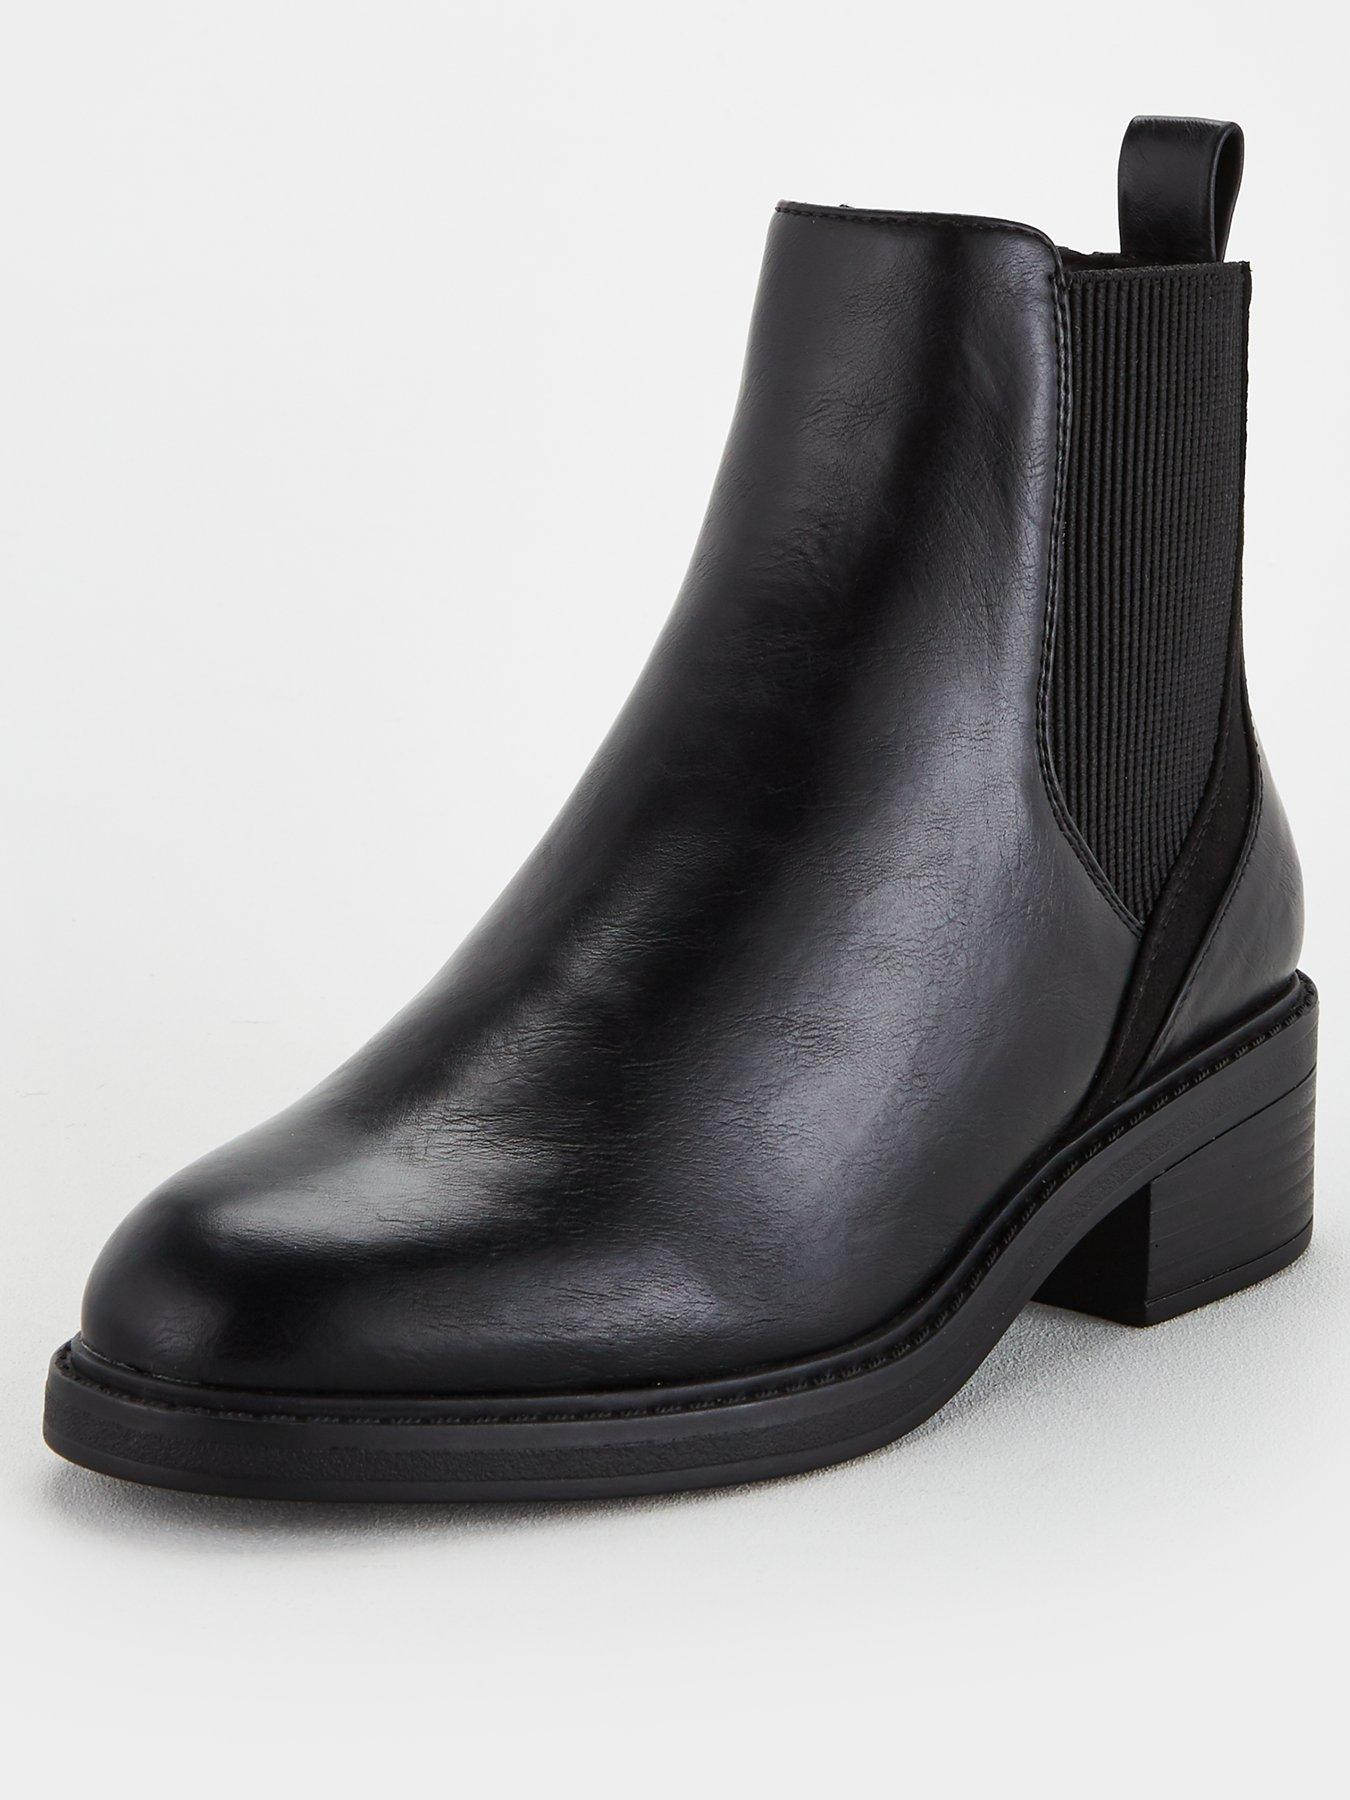 Ankle Boots   Wide   Boots   Shoes